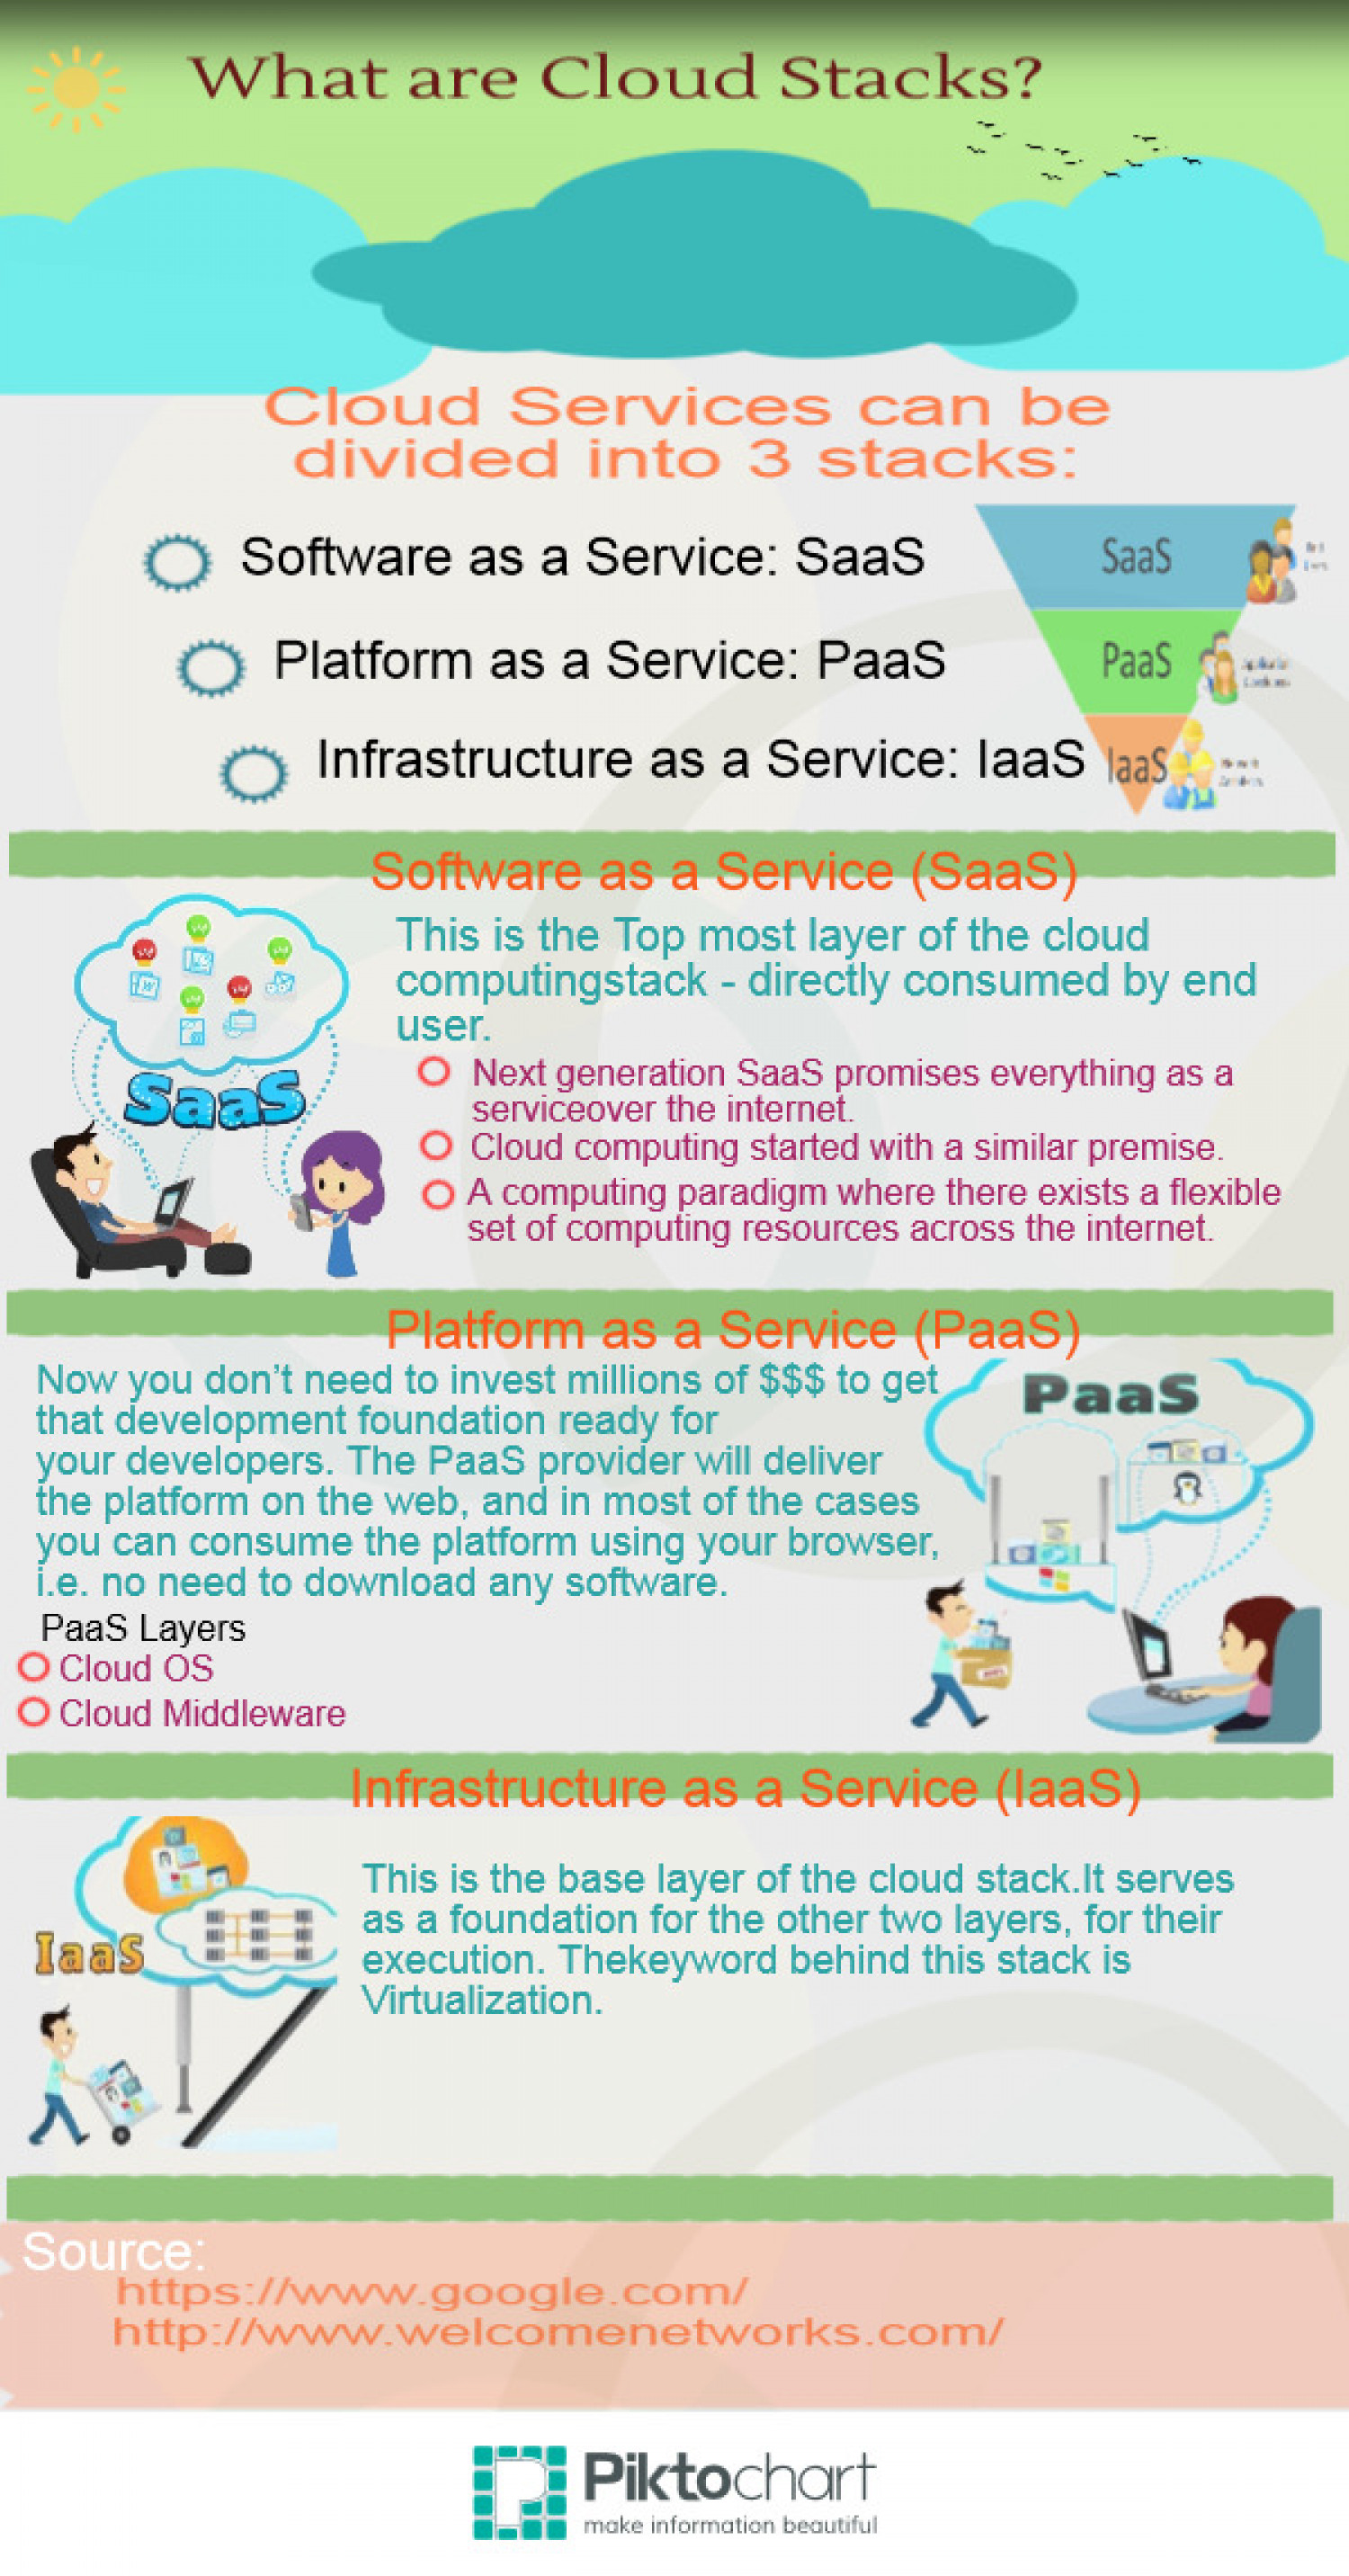 what are cloud stacks? Infographic